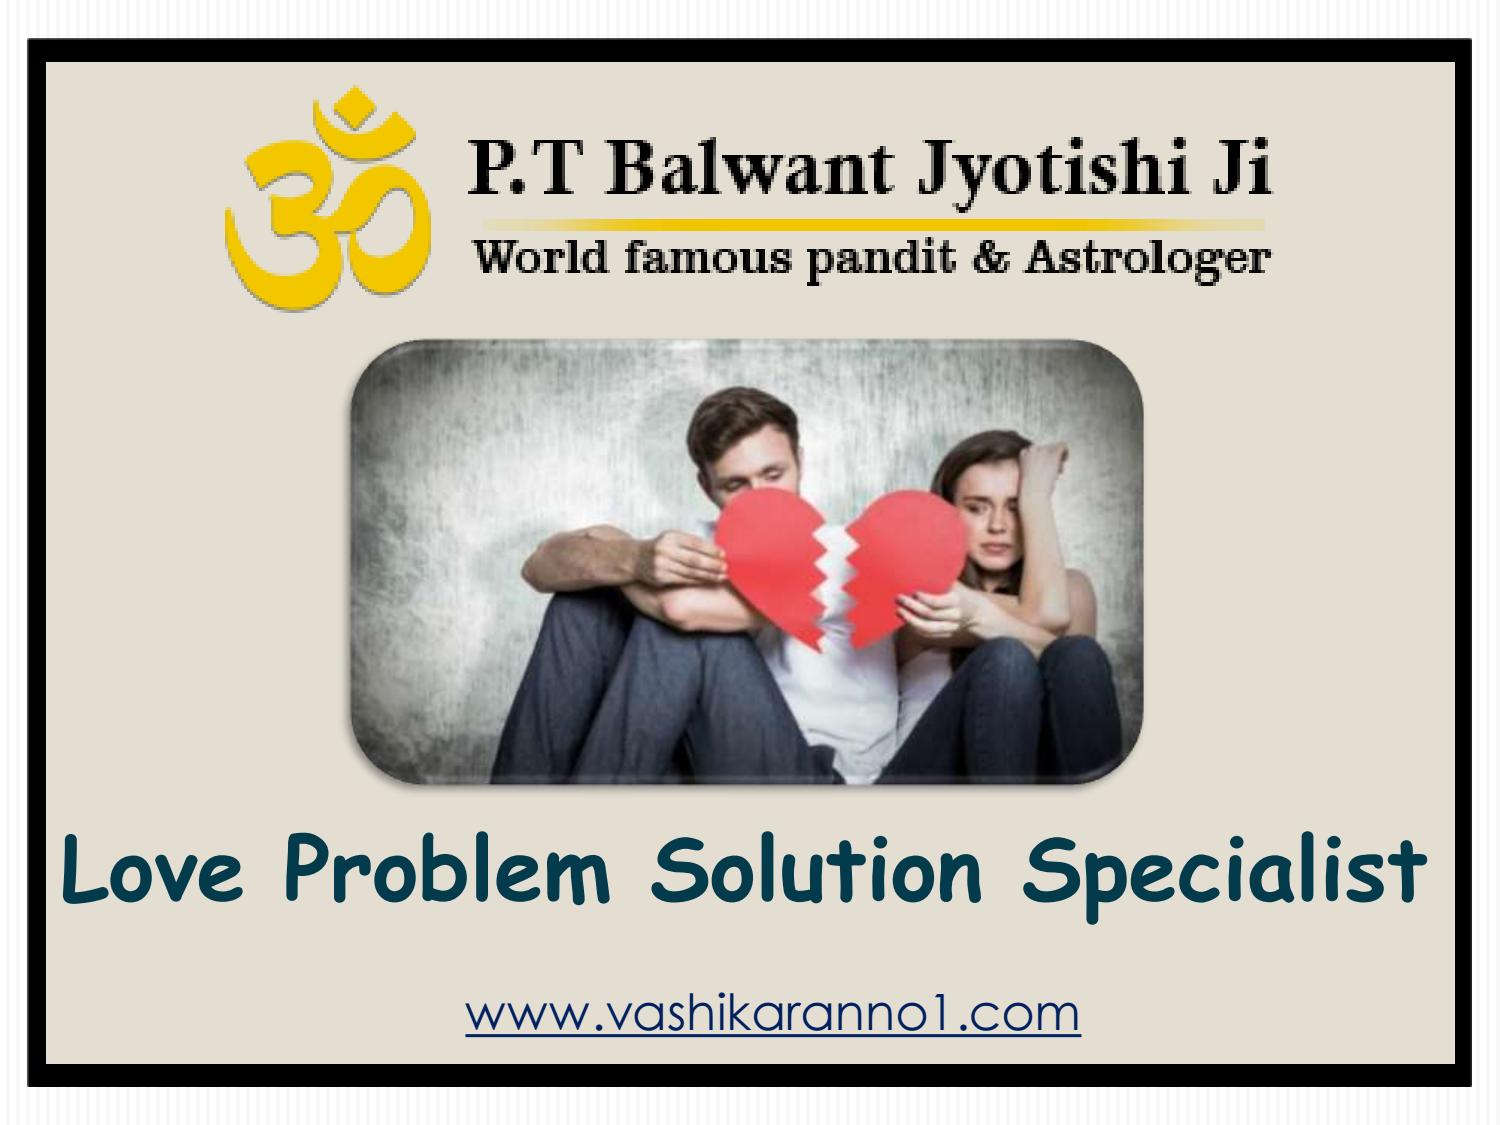 Lost Love Back Specialist in India - (+91-9950660034) - Pt